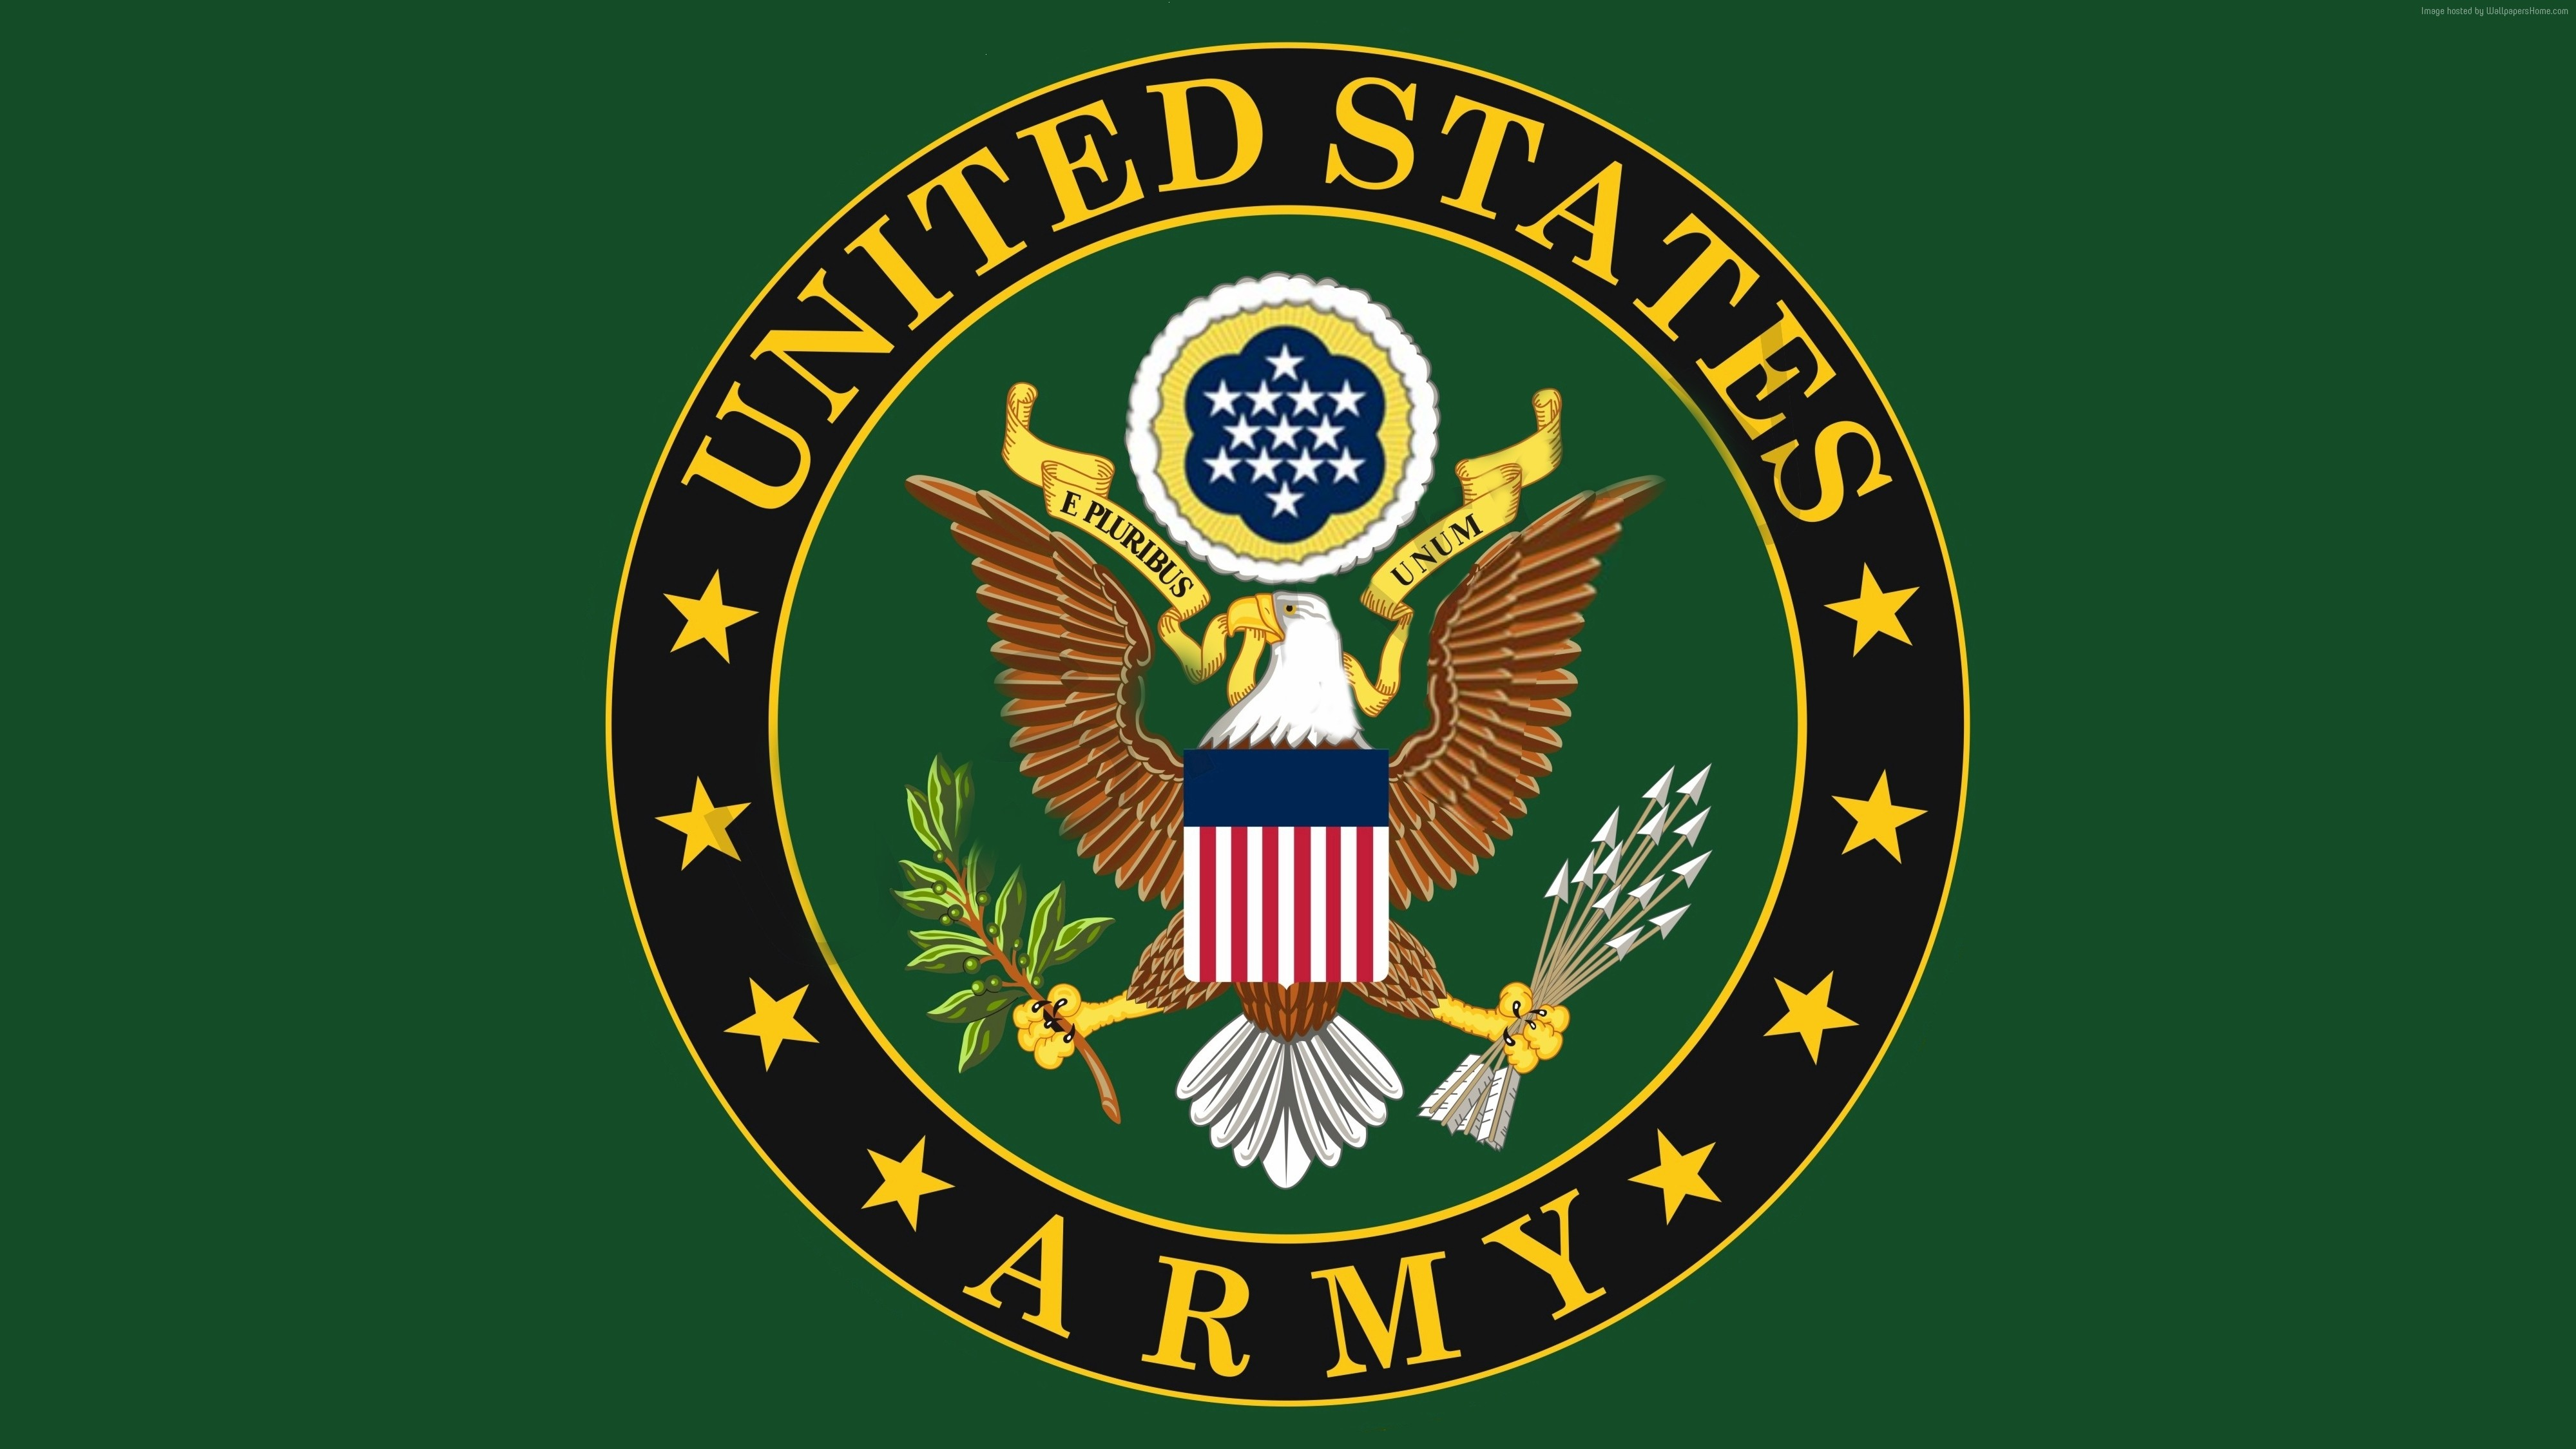 u.s. army, logo, eagle, military, png logo #2867